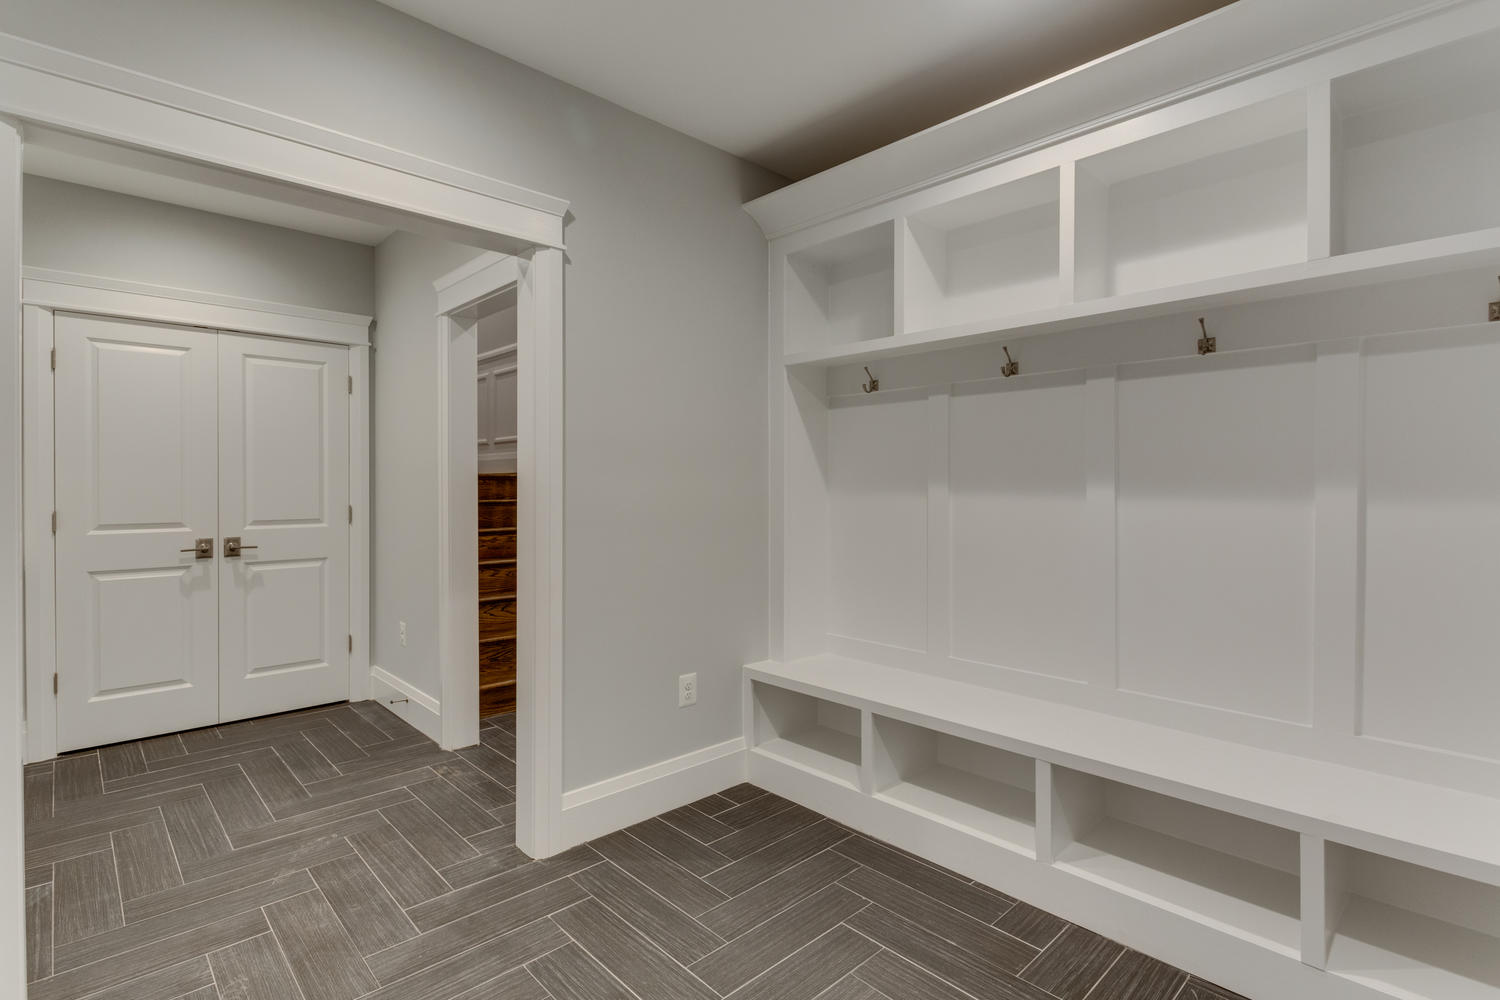 4624 N Dittmar Rd Arlington New Construction Country Club Hills (134).jpg